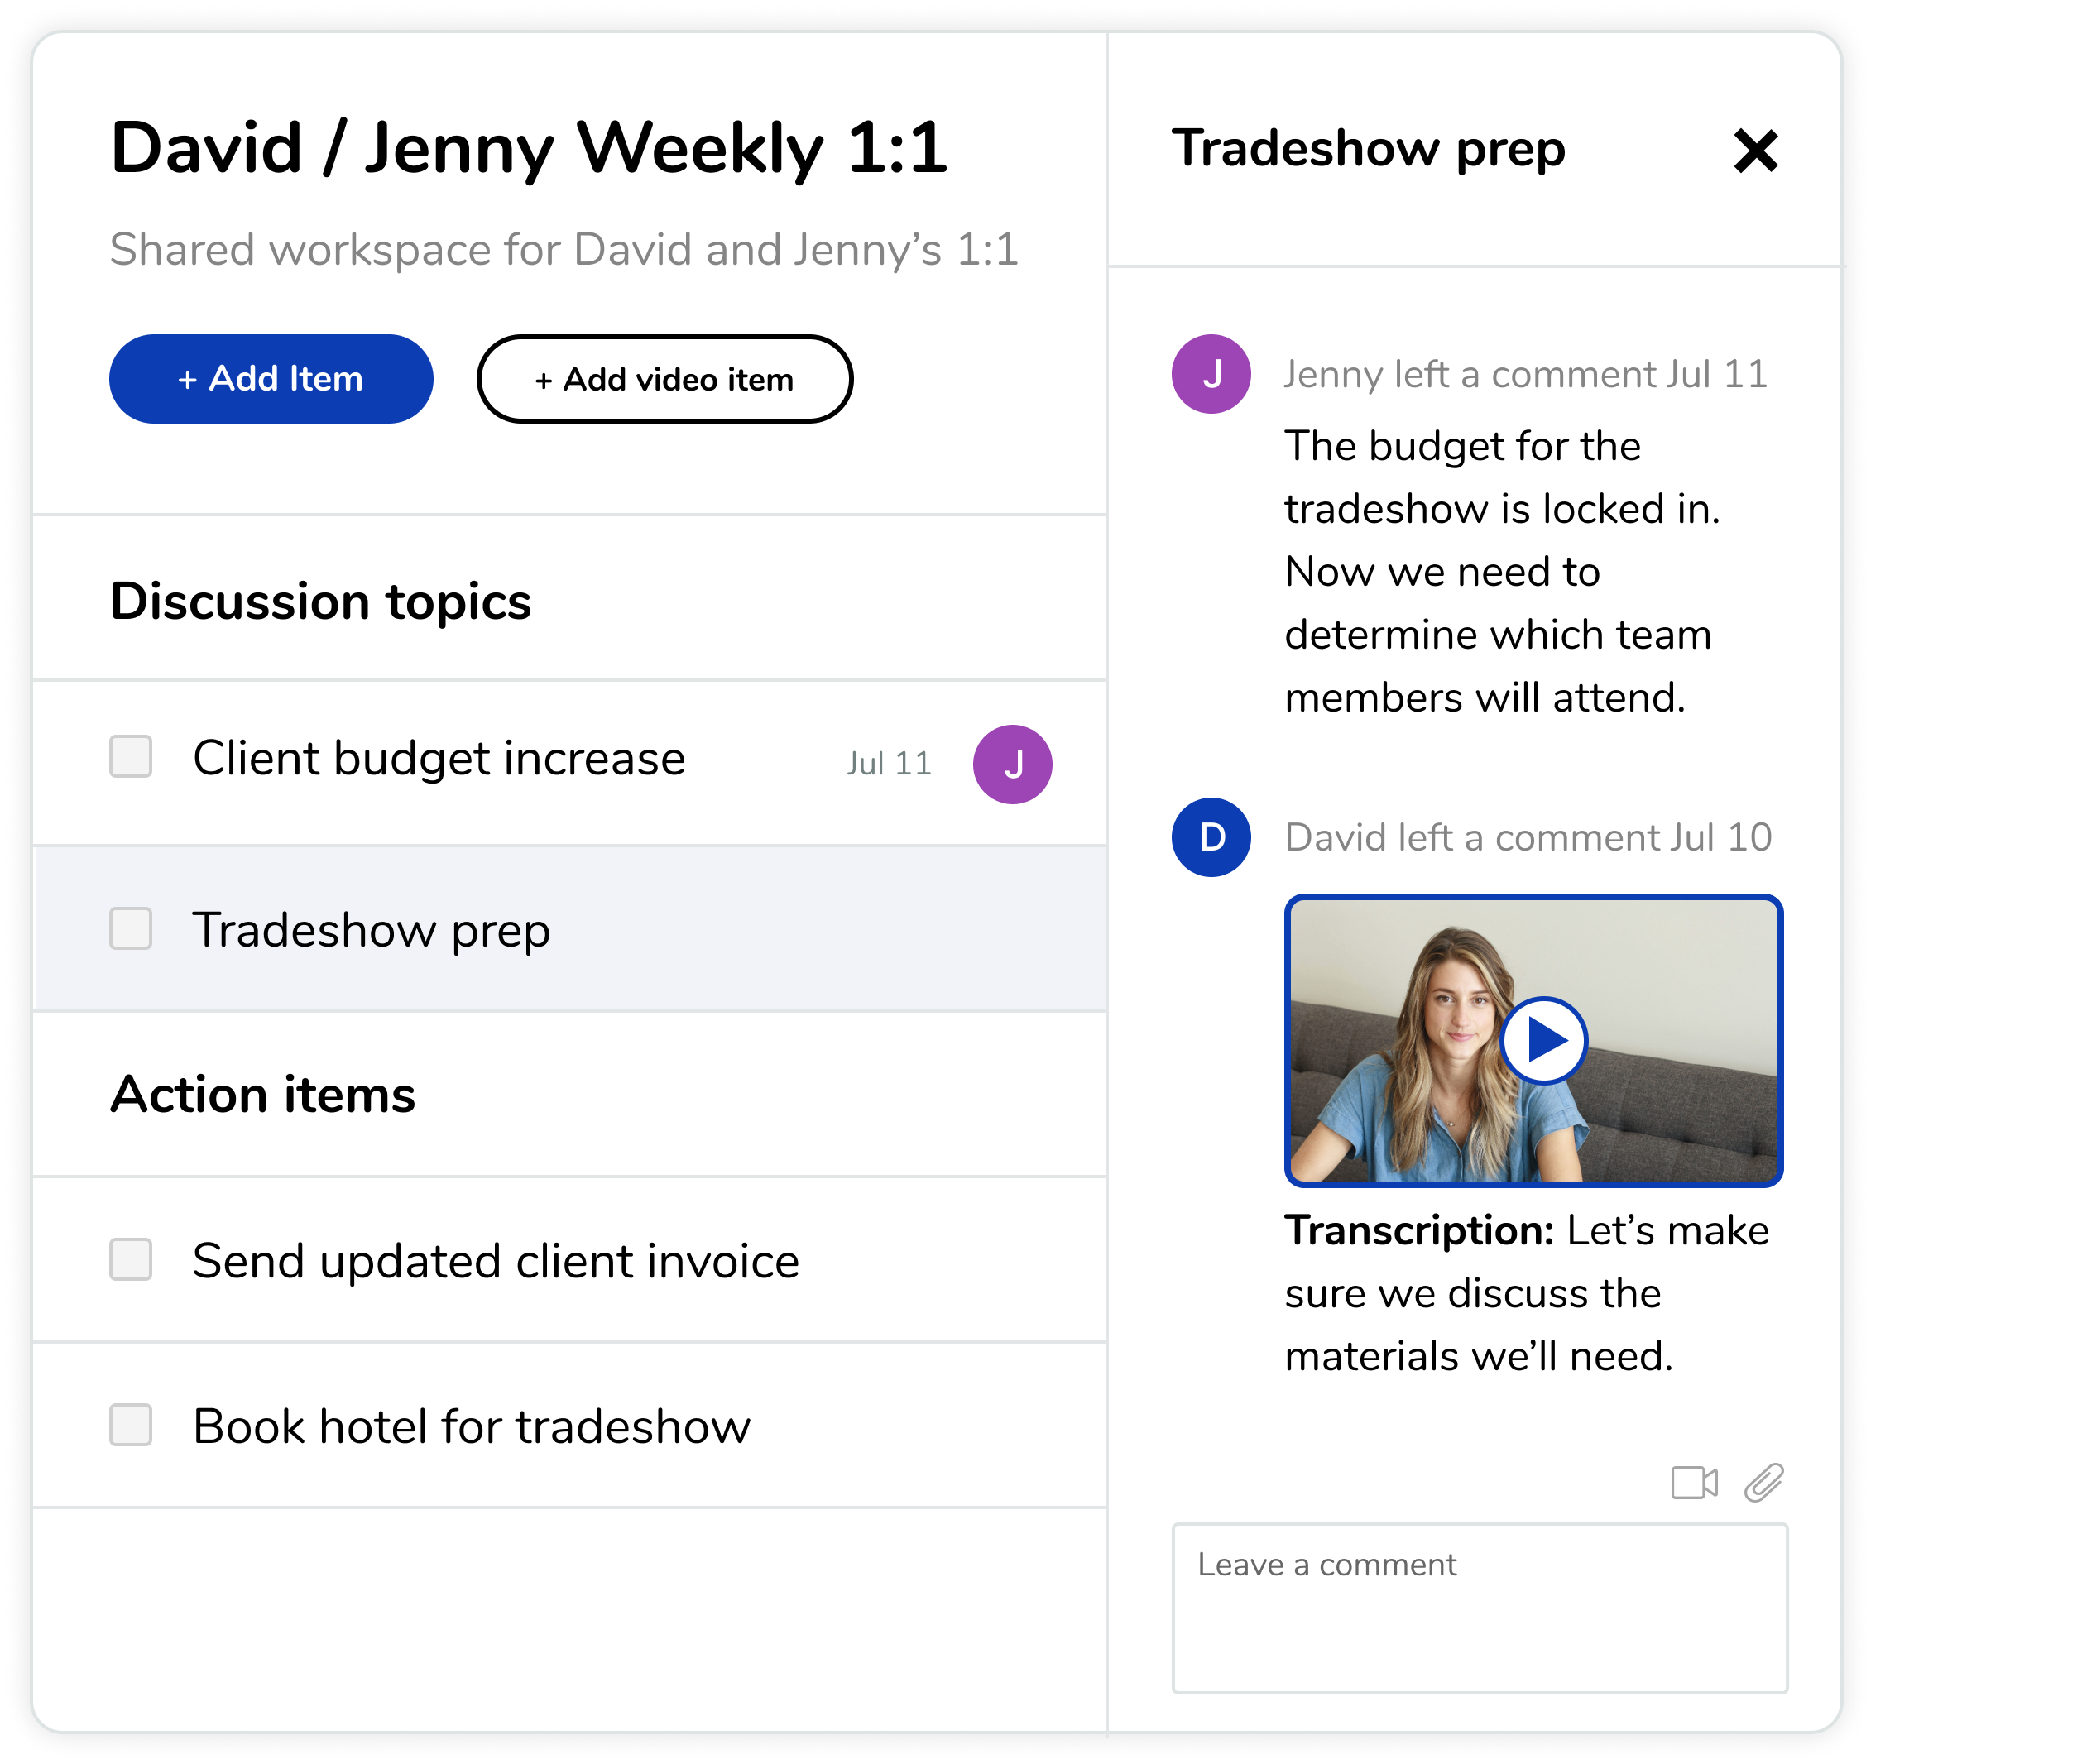 Example of a workspace with collaboration features for distributed teams with asynchronous workpatterns